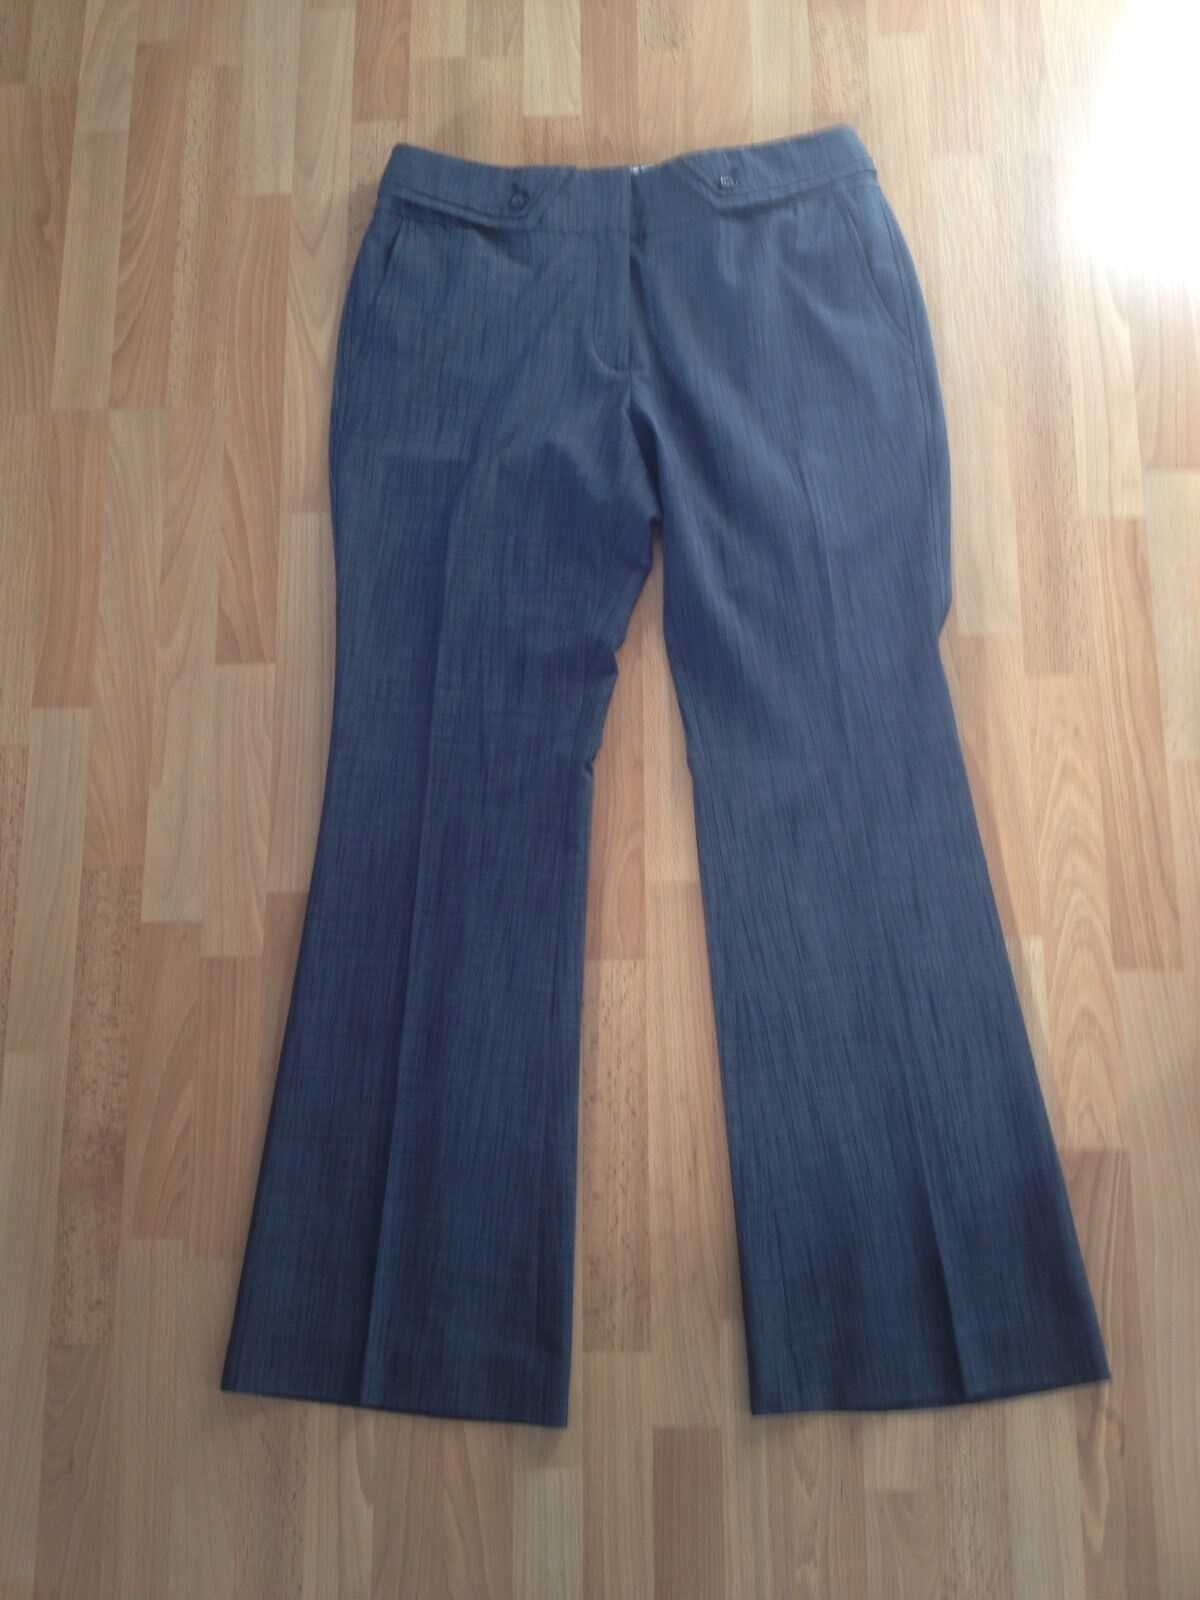 Ladies Jasper Conran Grey bluee Bootcut Tailored Trousers-Size 12 Petite FREE P&P